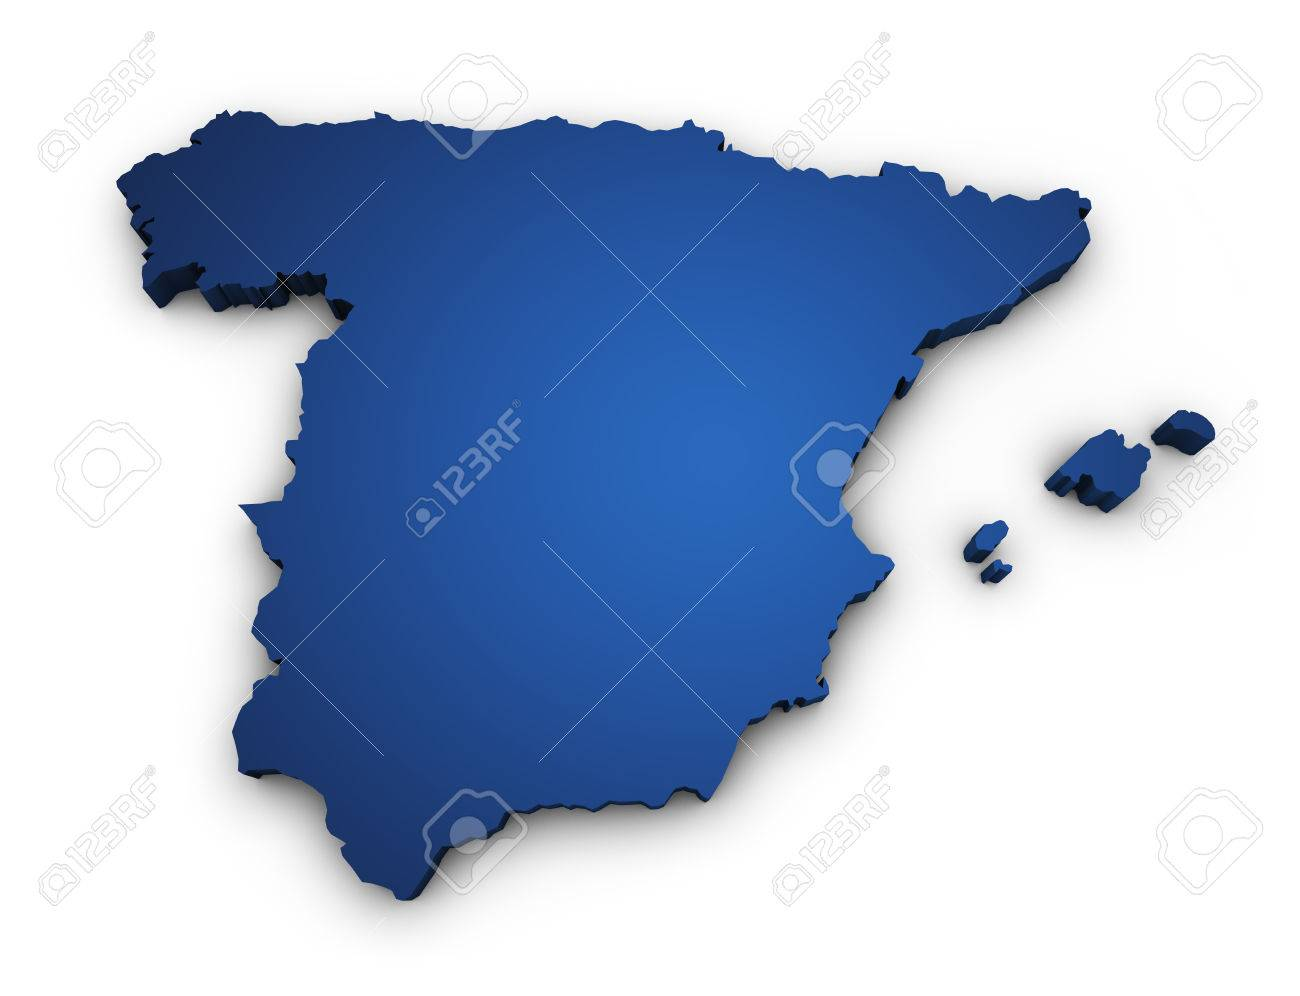 Mapa De España 3d.Shape 3d Of Spain Map Colored In Blue And Isolated On White Background